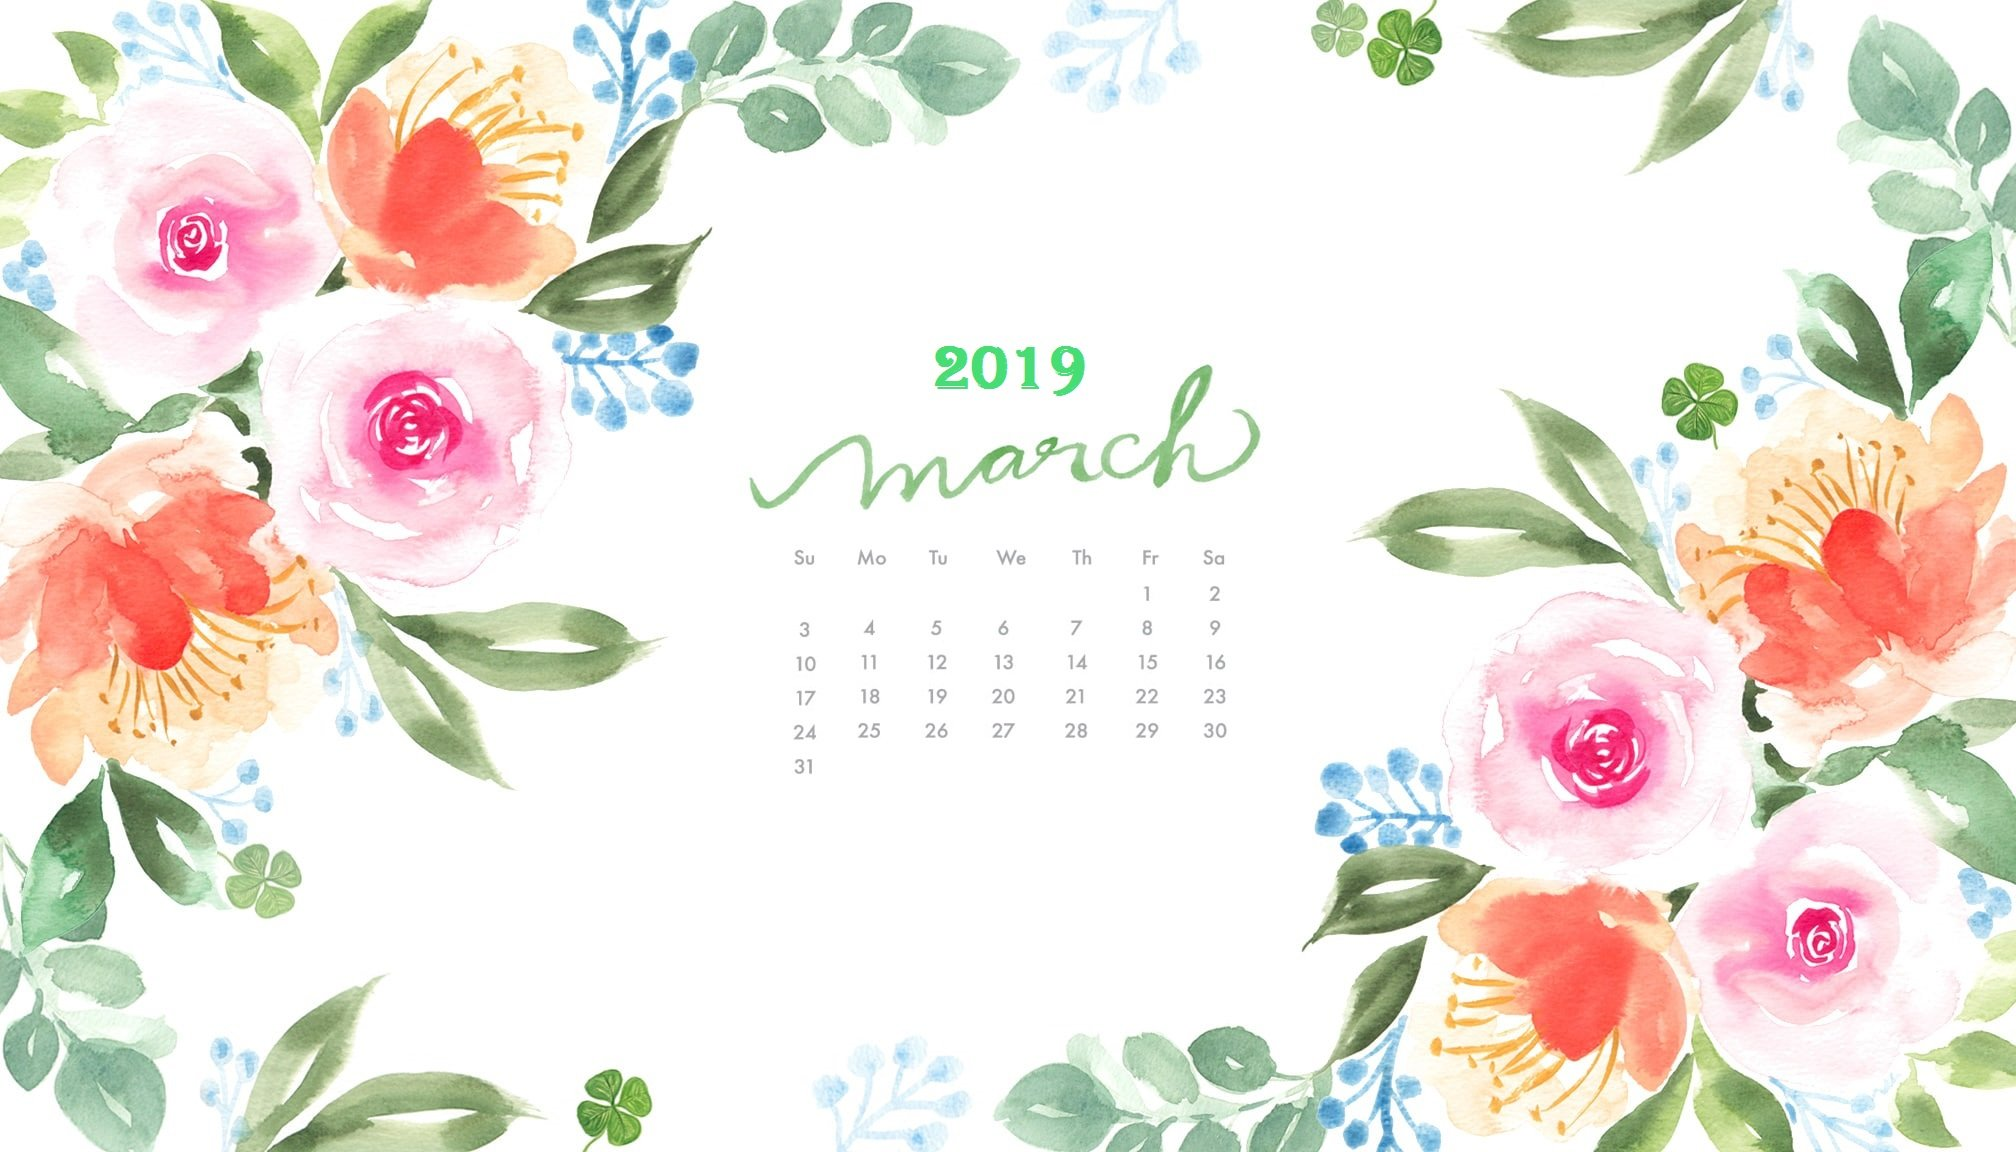 Blank Calendar For March 2019 Printable with Holidays Template Blank 2016x1152